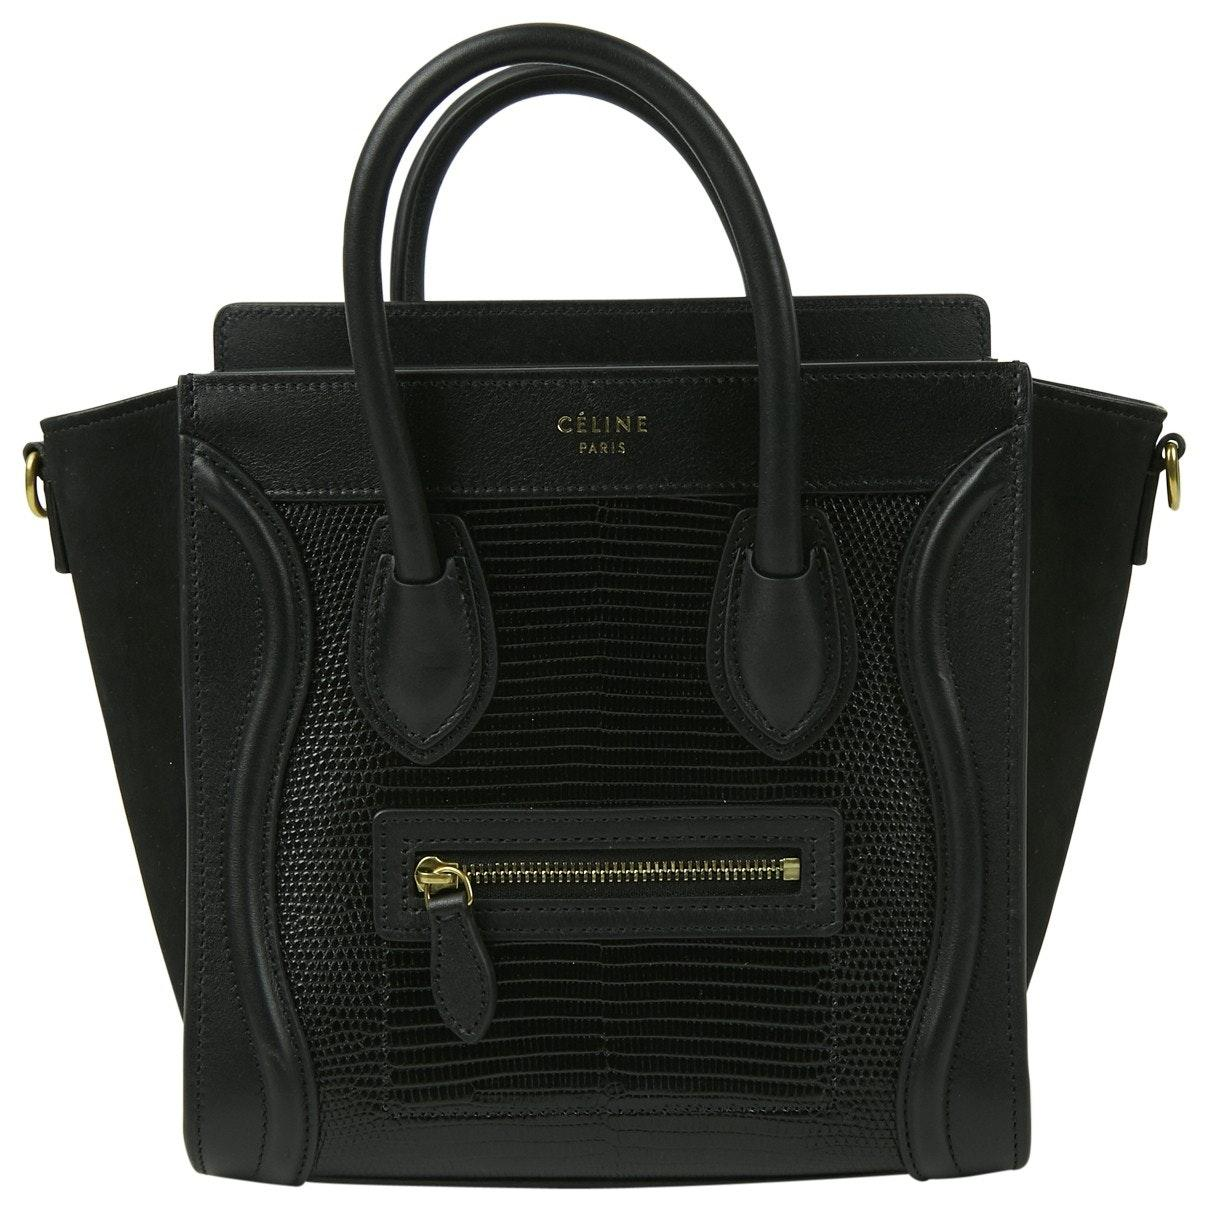 Nano Luggage Black Lizard Handbag